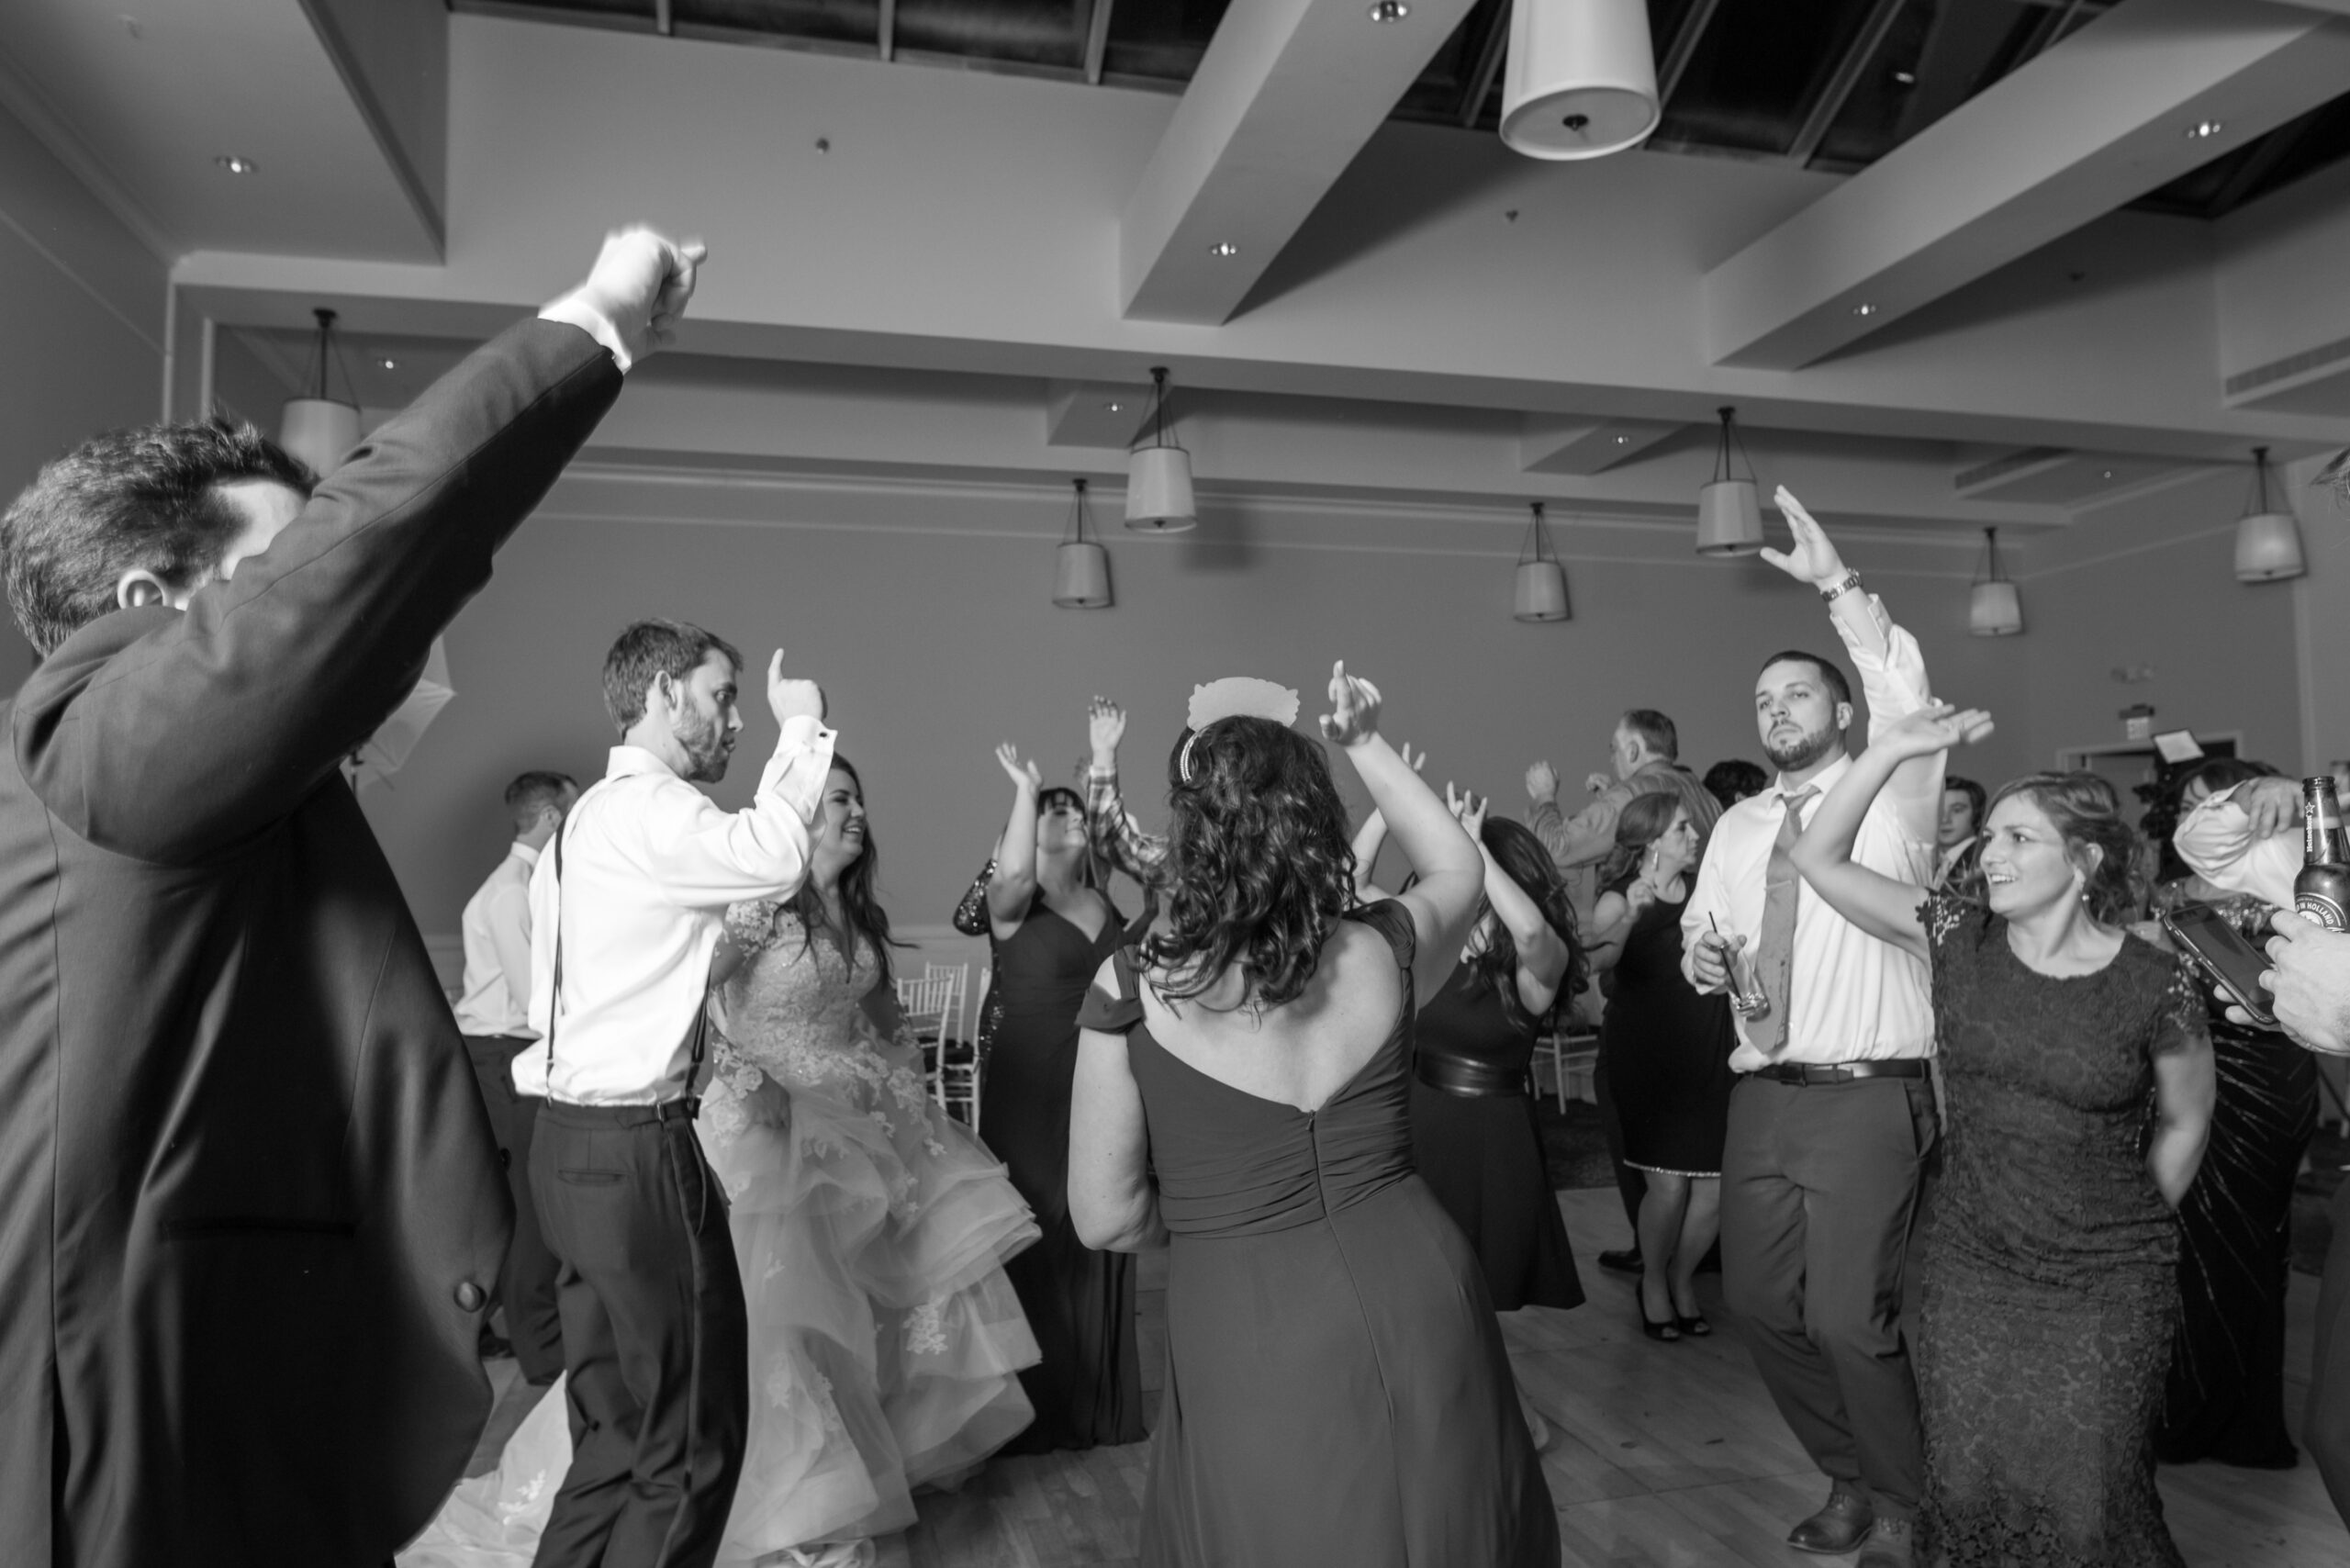 New-Years-Eve-Wedding-Dancefloor-Guests-Hands-Up